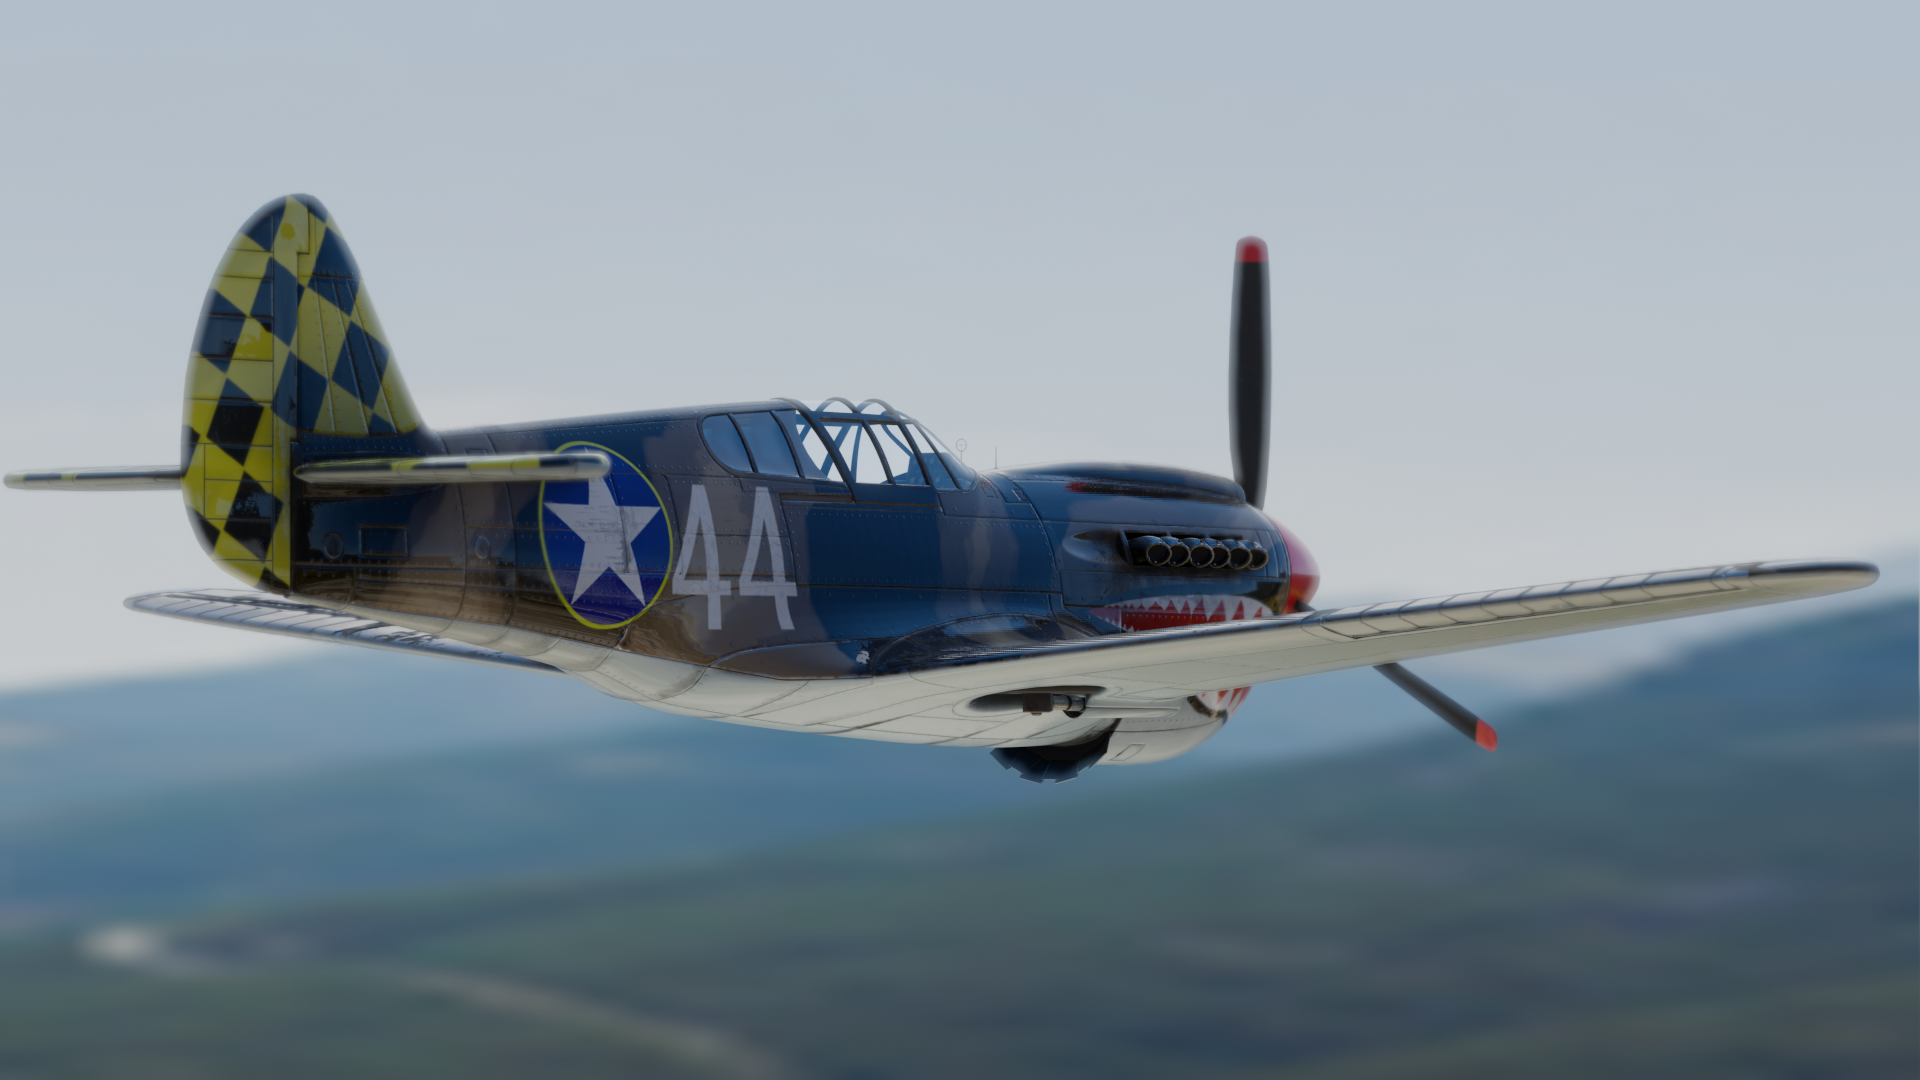 P40 Warhawk preview image 6